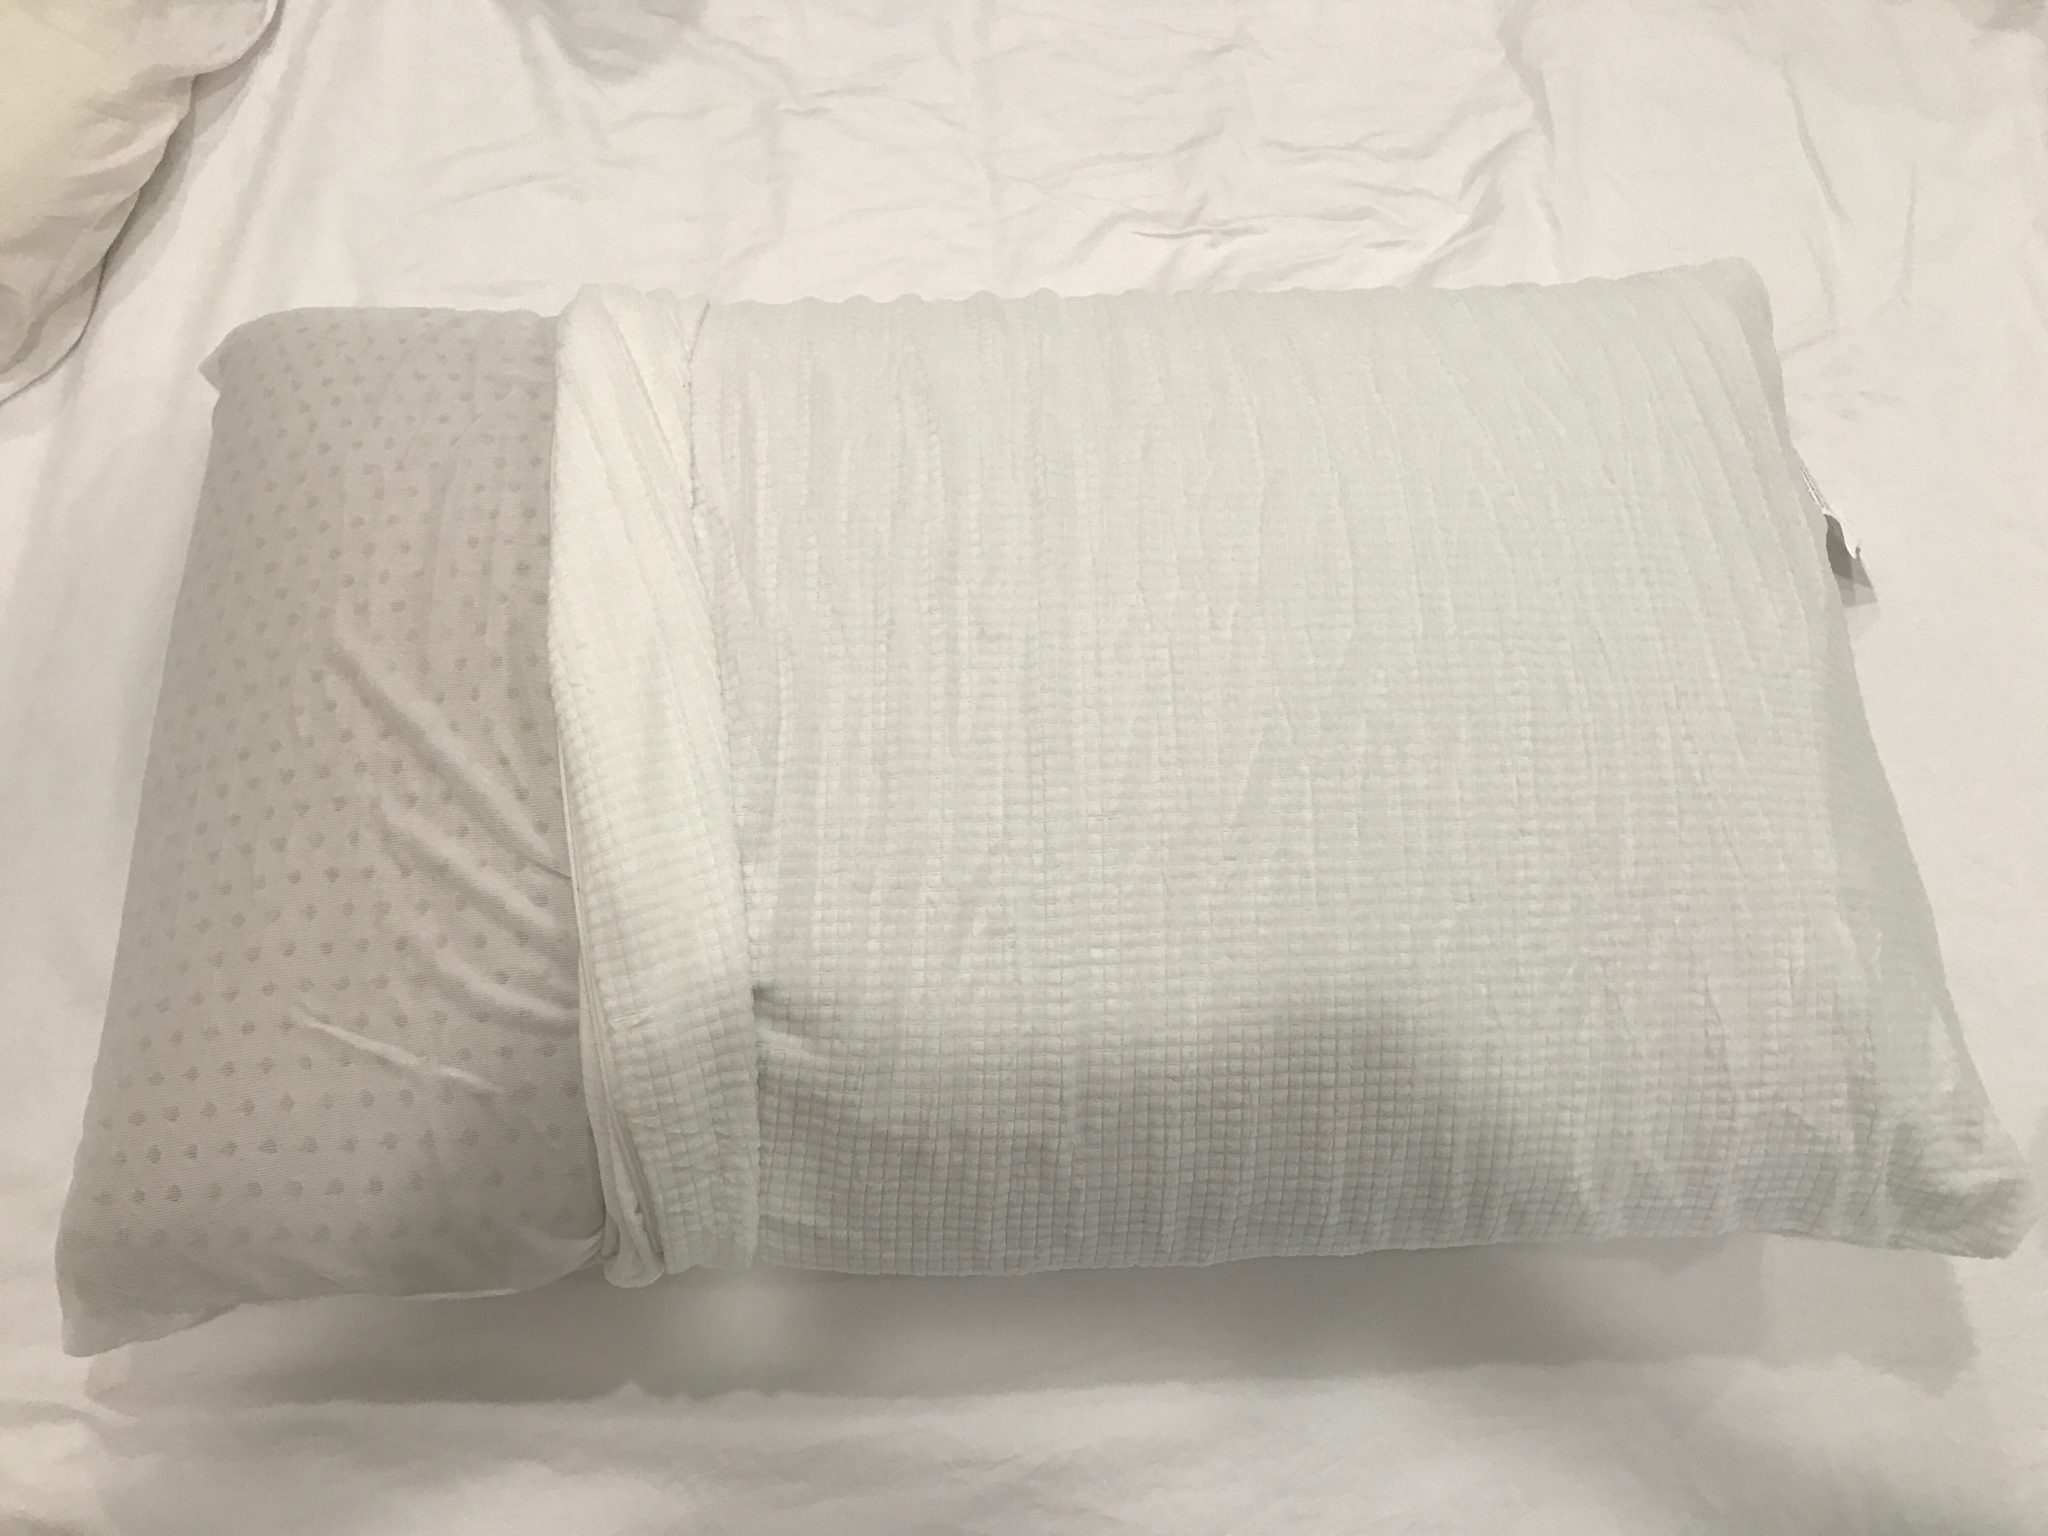 Pangeabed Queen Copper Pillow Review